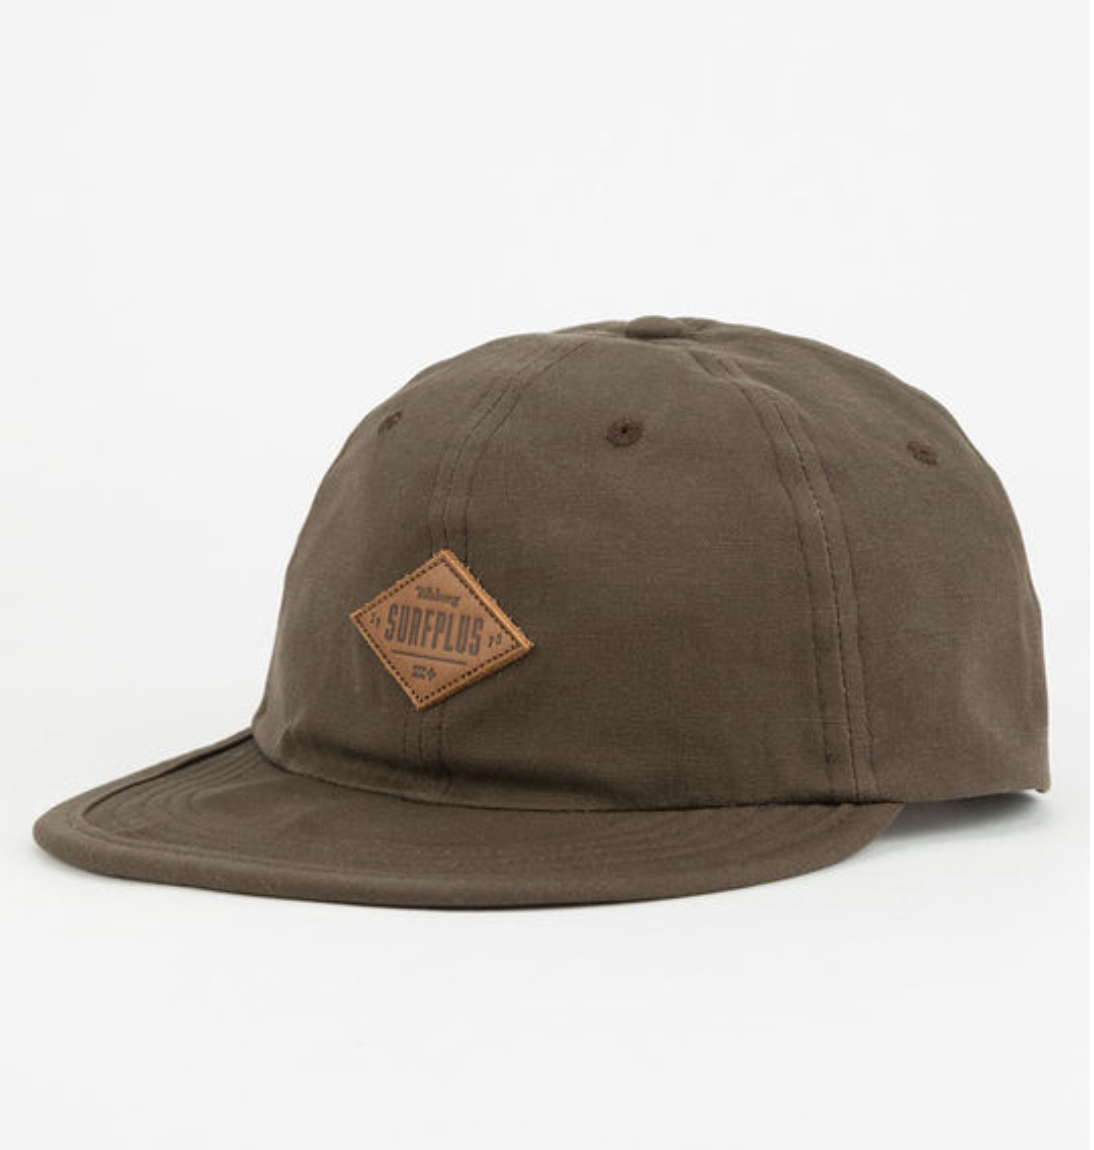 Billabong Cycle Mens Strapback Hat - Brown Hat - Innerlight Surf Shop 734778e7c411